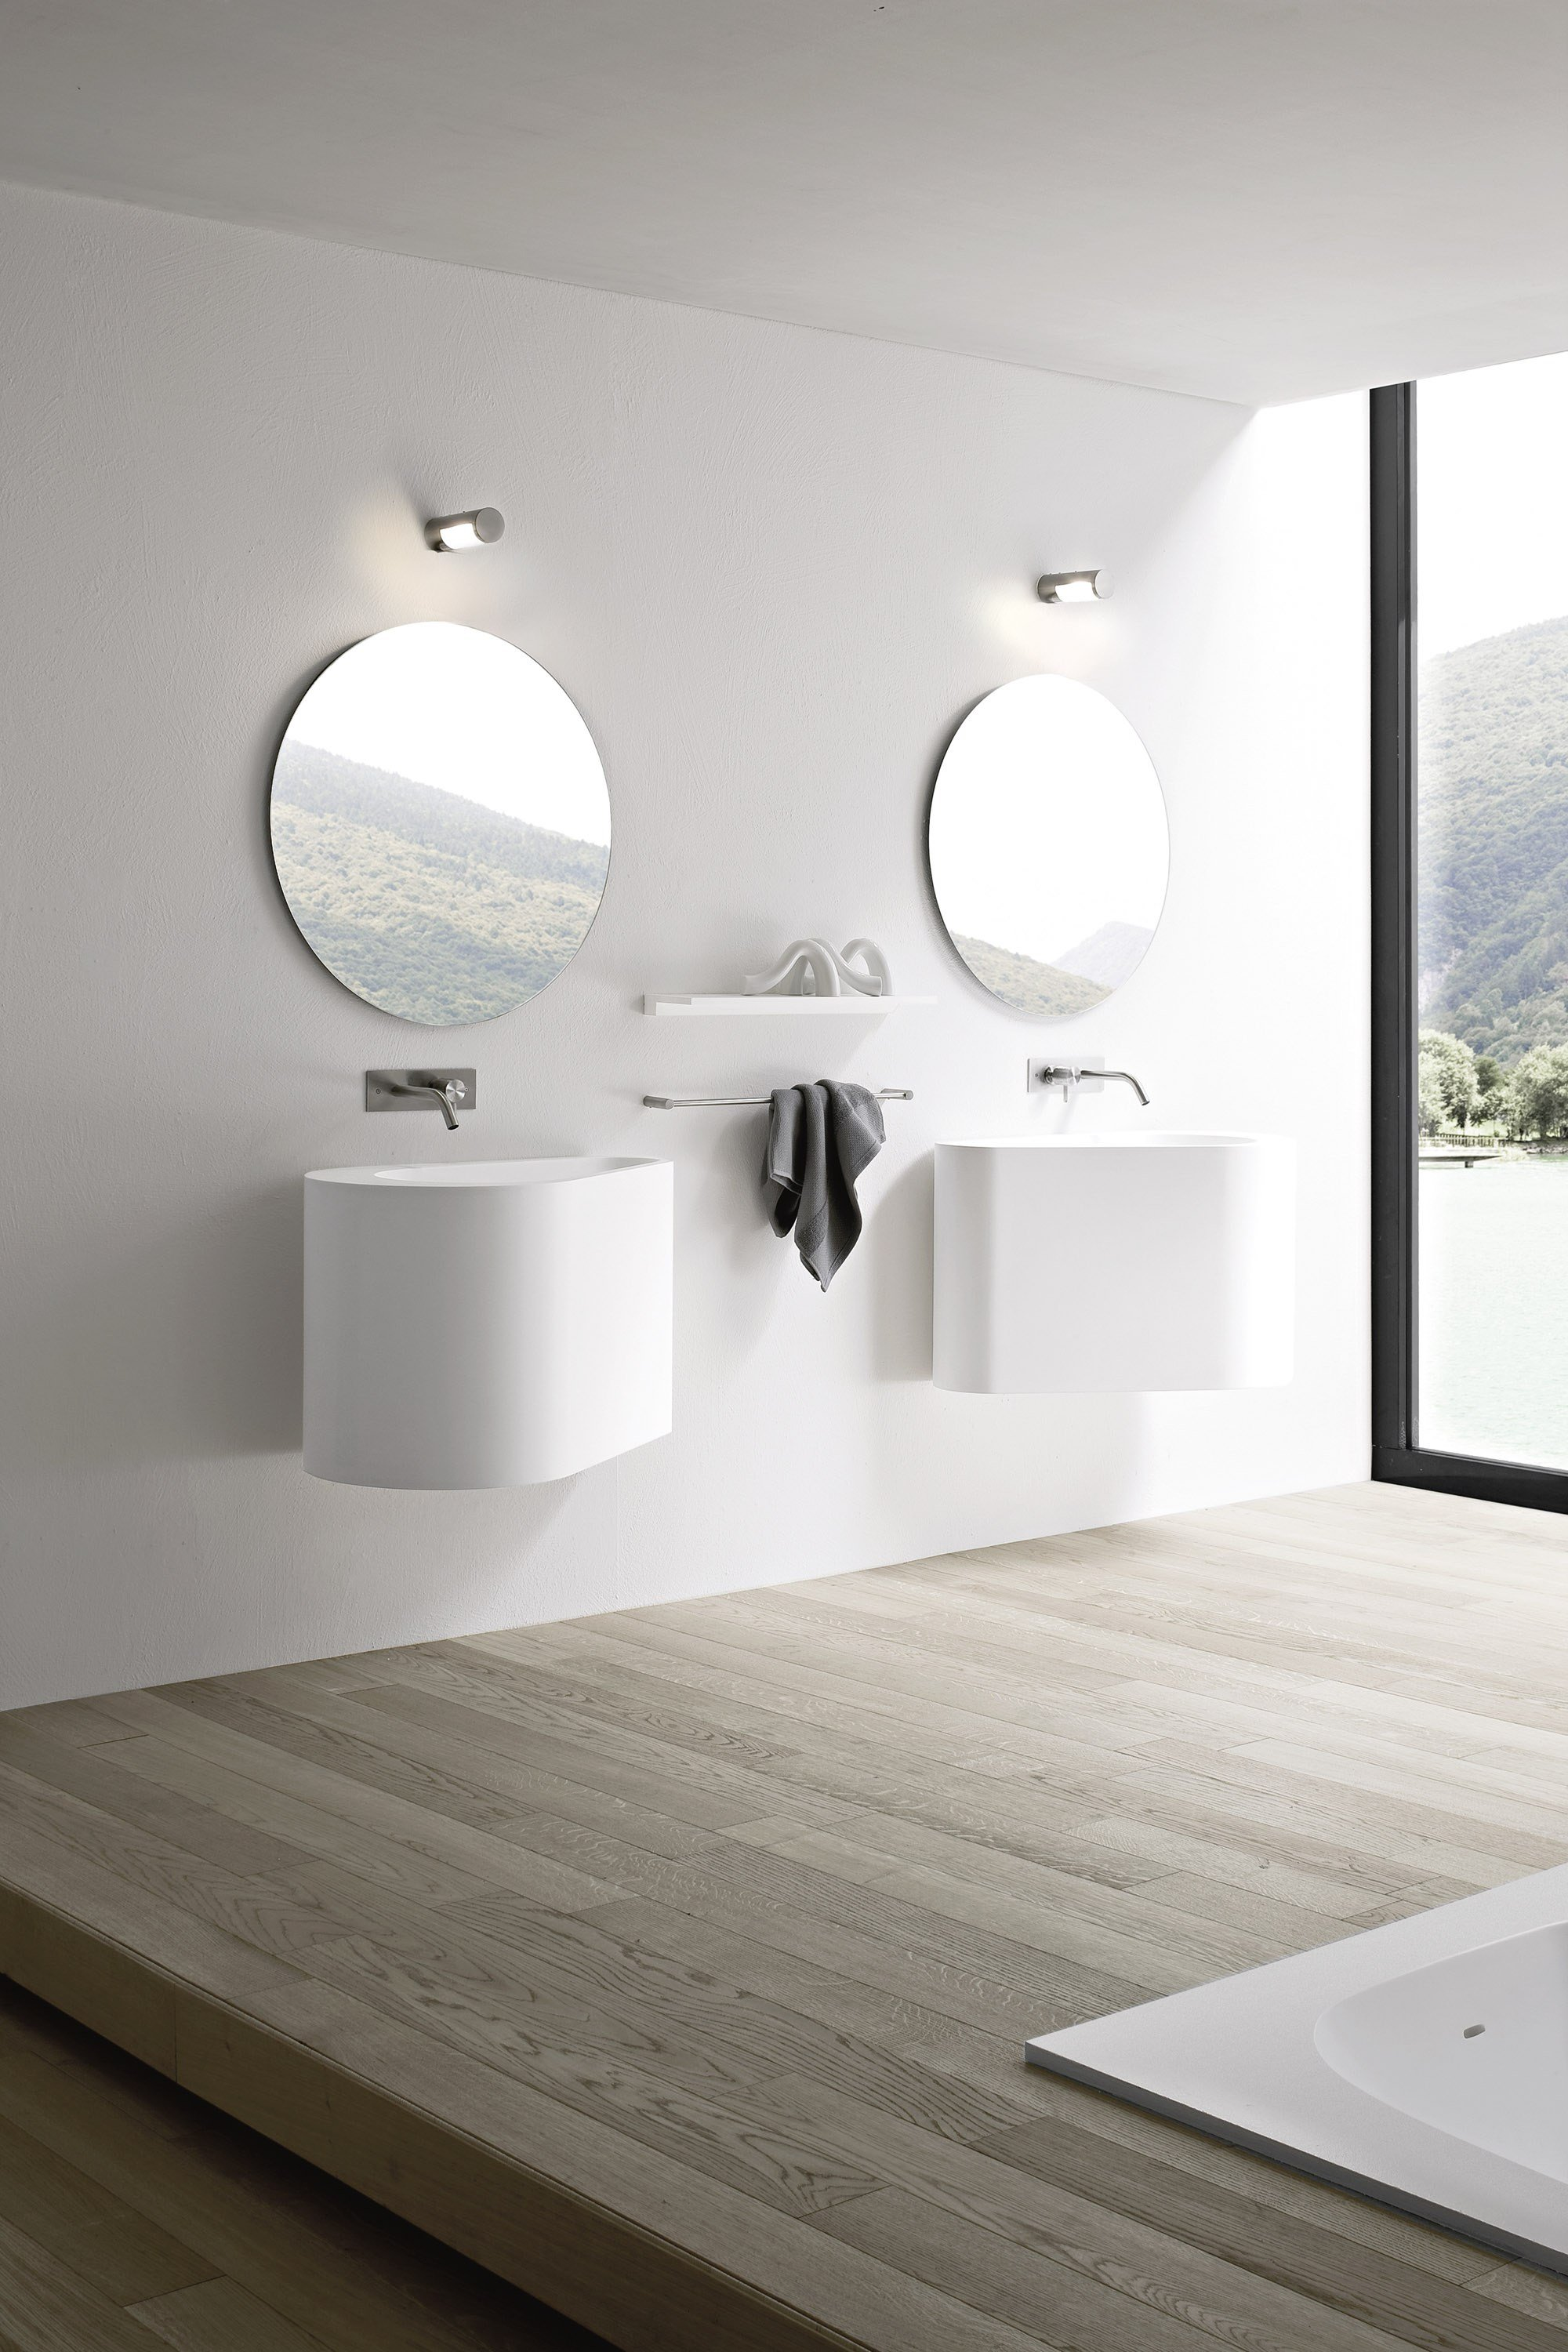 Boma wall mounted washbasin by rexa design design imago design for Miroir rond ikea